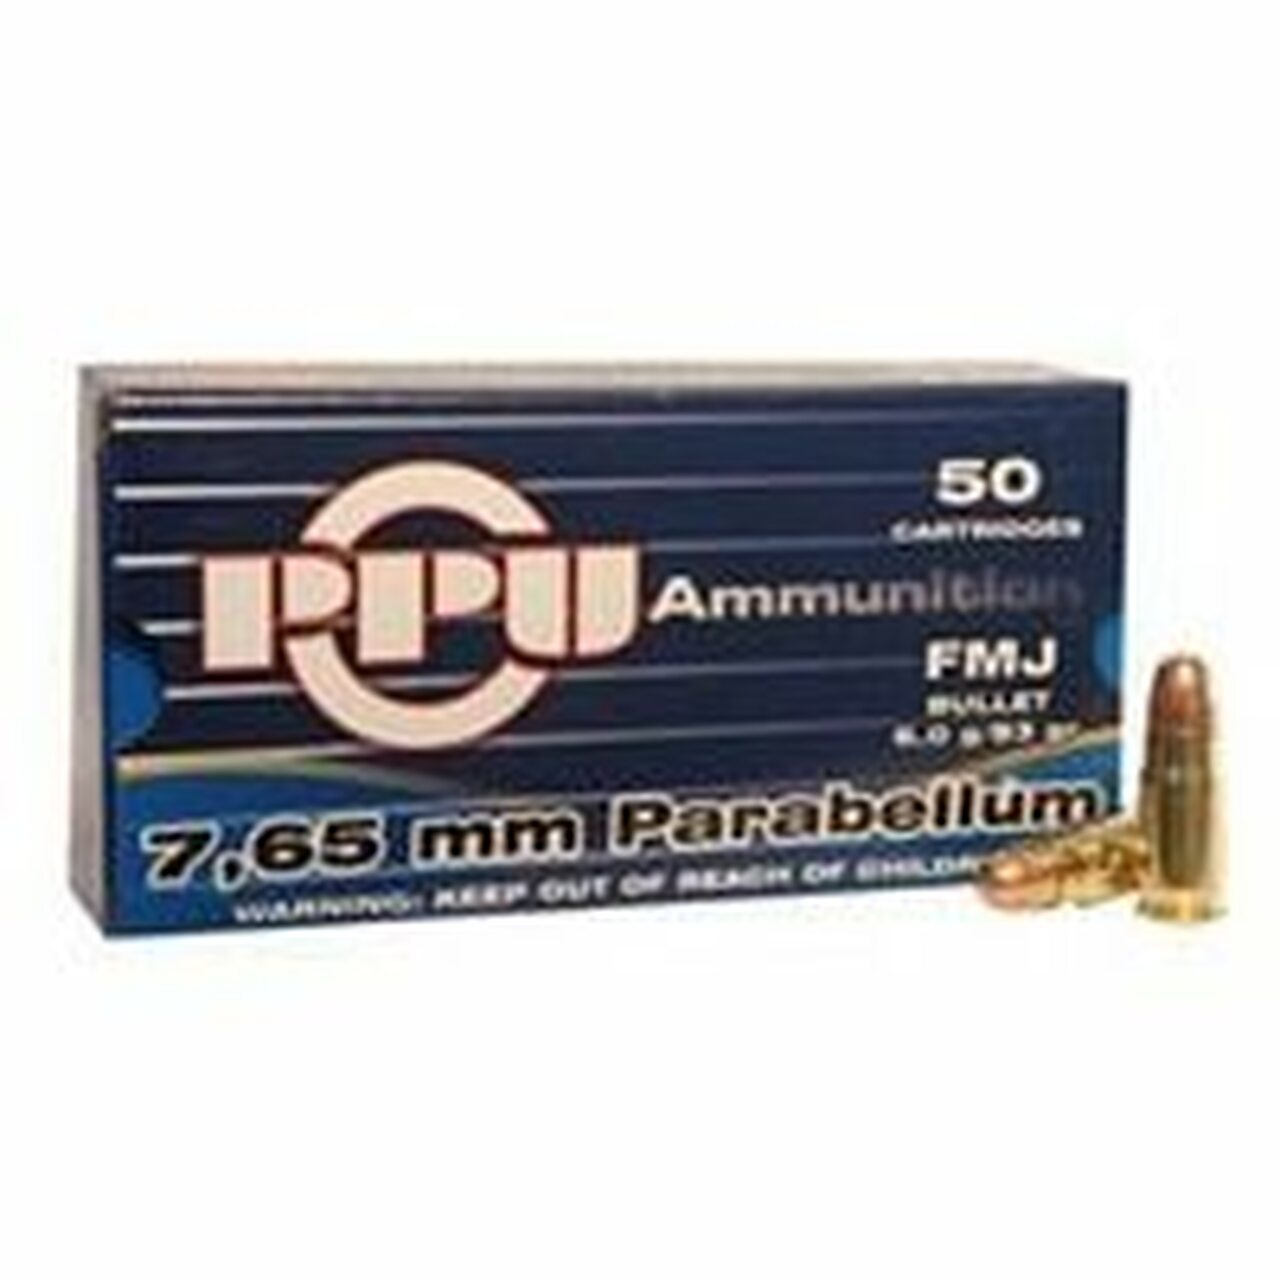 30 Luger Ammo